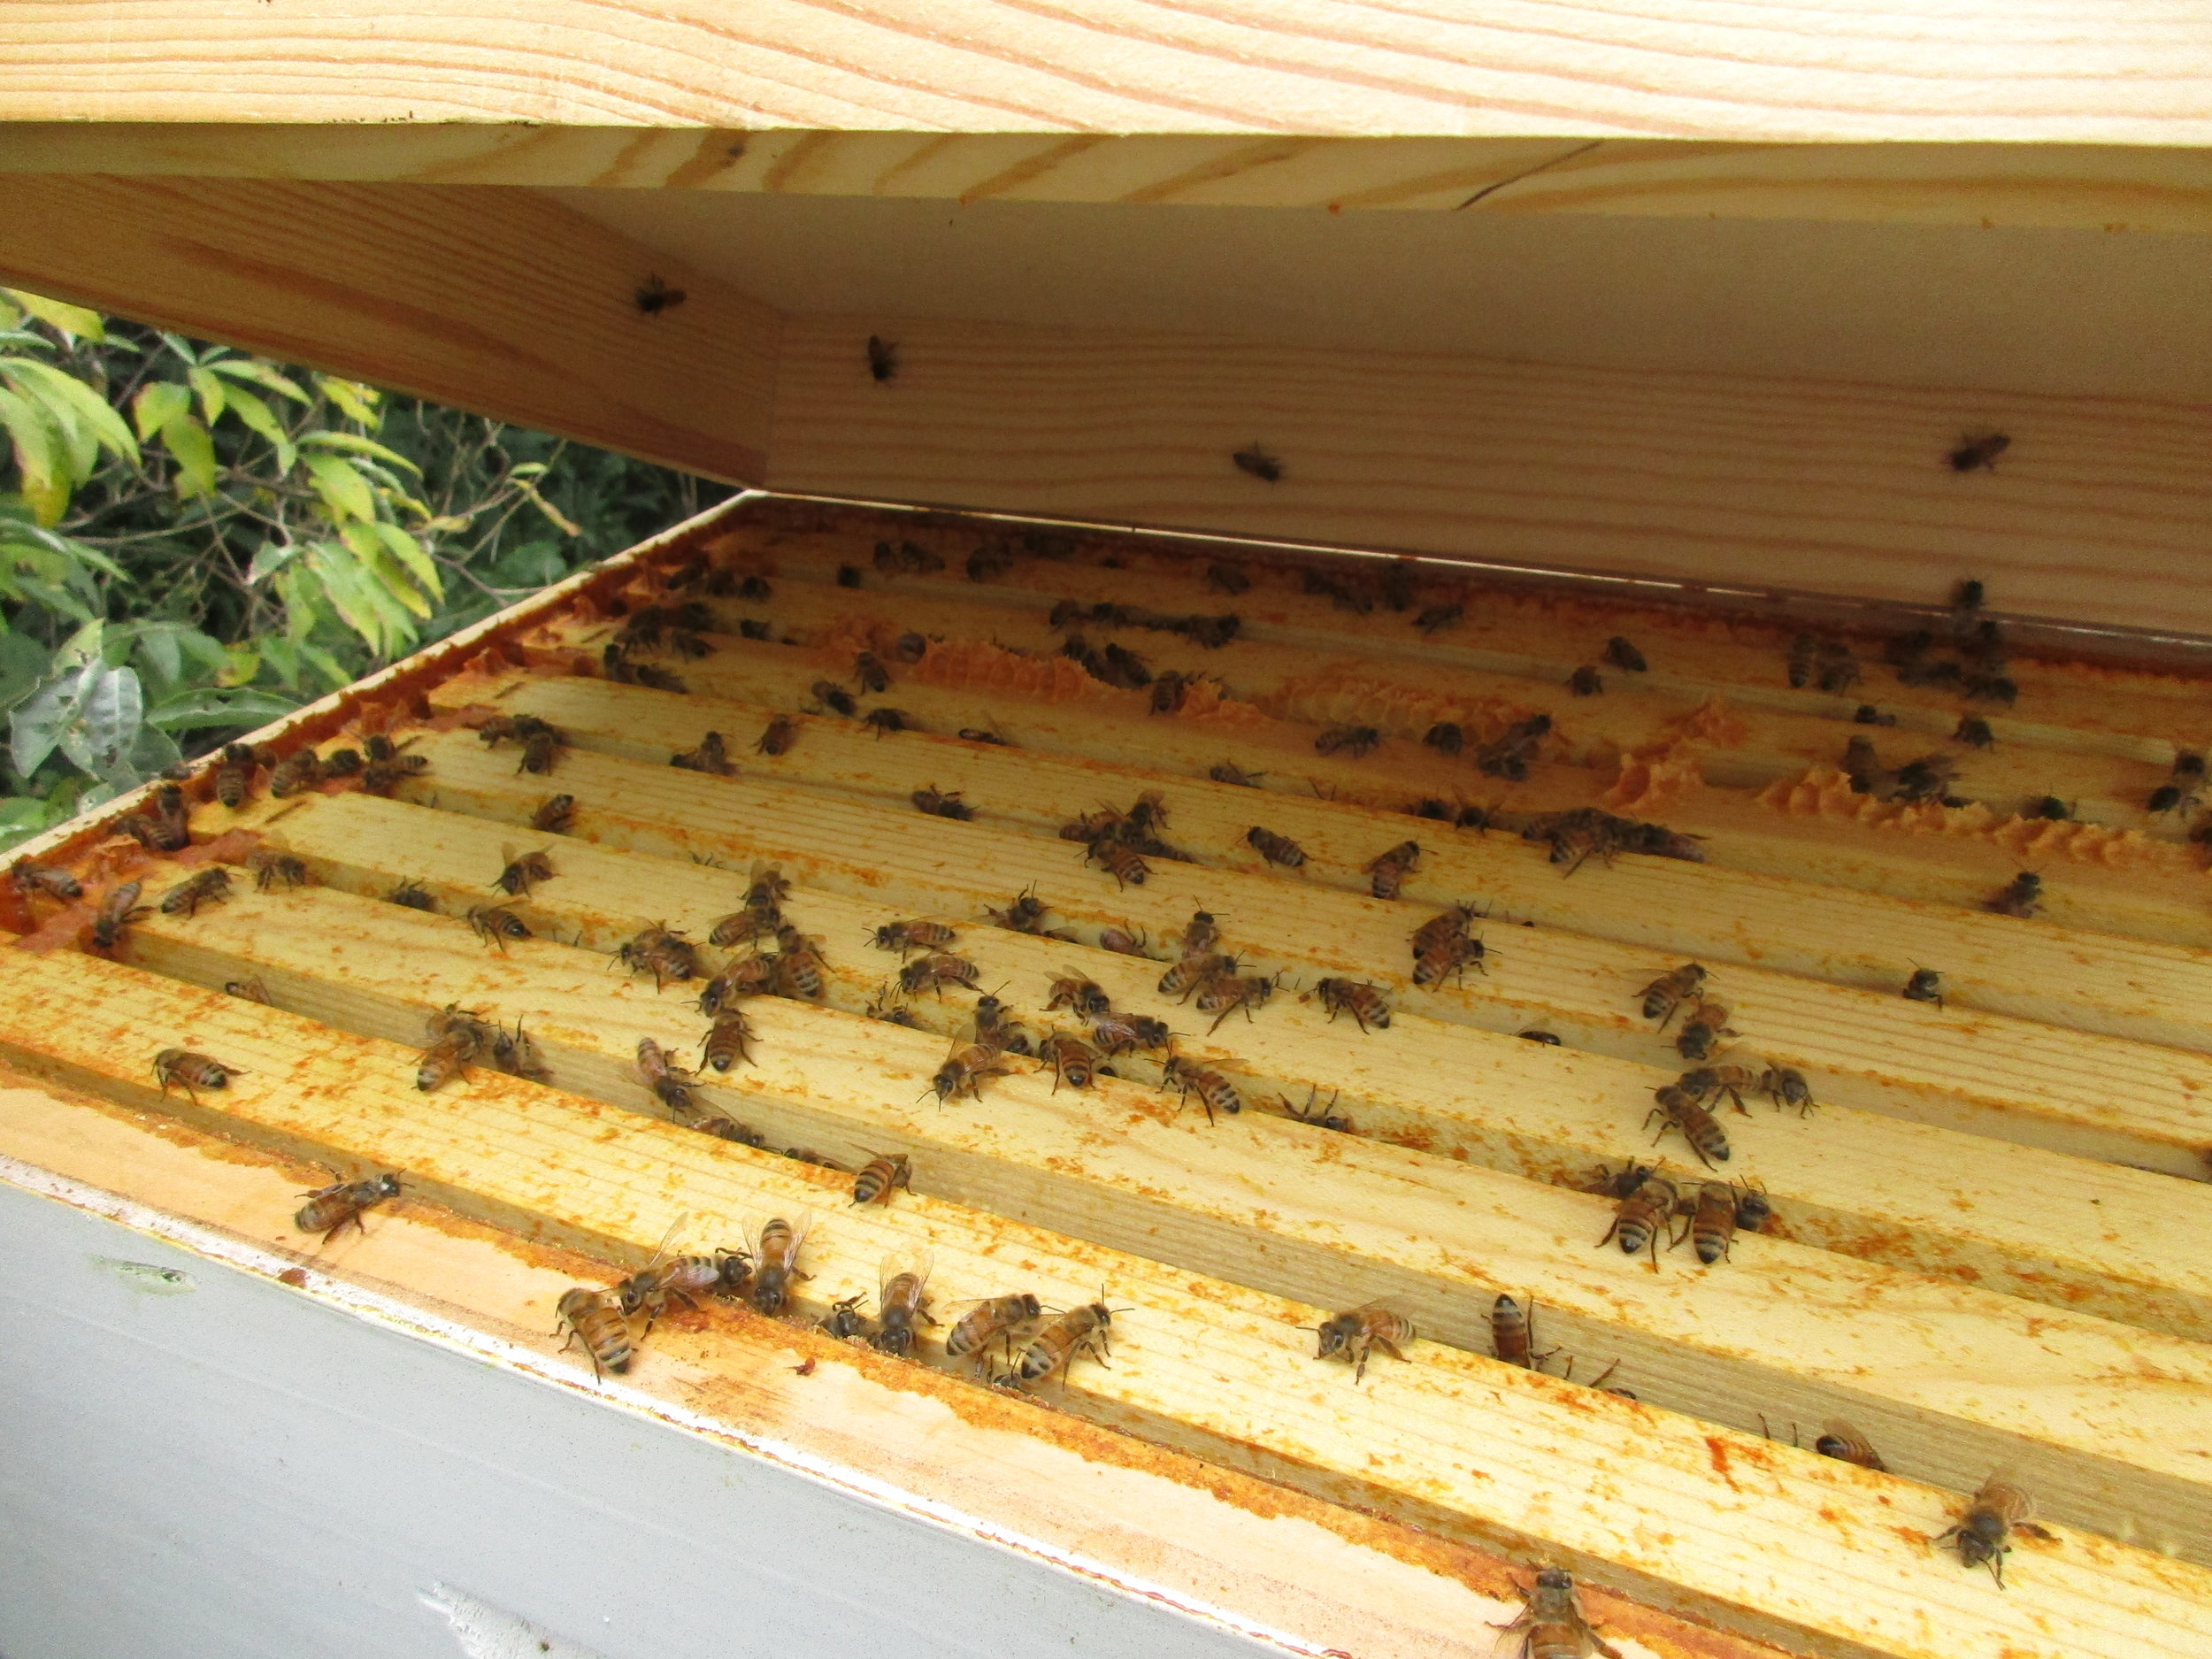 Supposedly, the bees should all move down to the lower boxes. Clearly these bees did not read the instructions. In fact some of them are even hanging out on the felt lining where I sprayed the repellent!